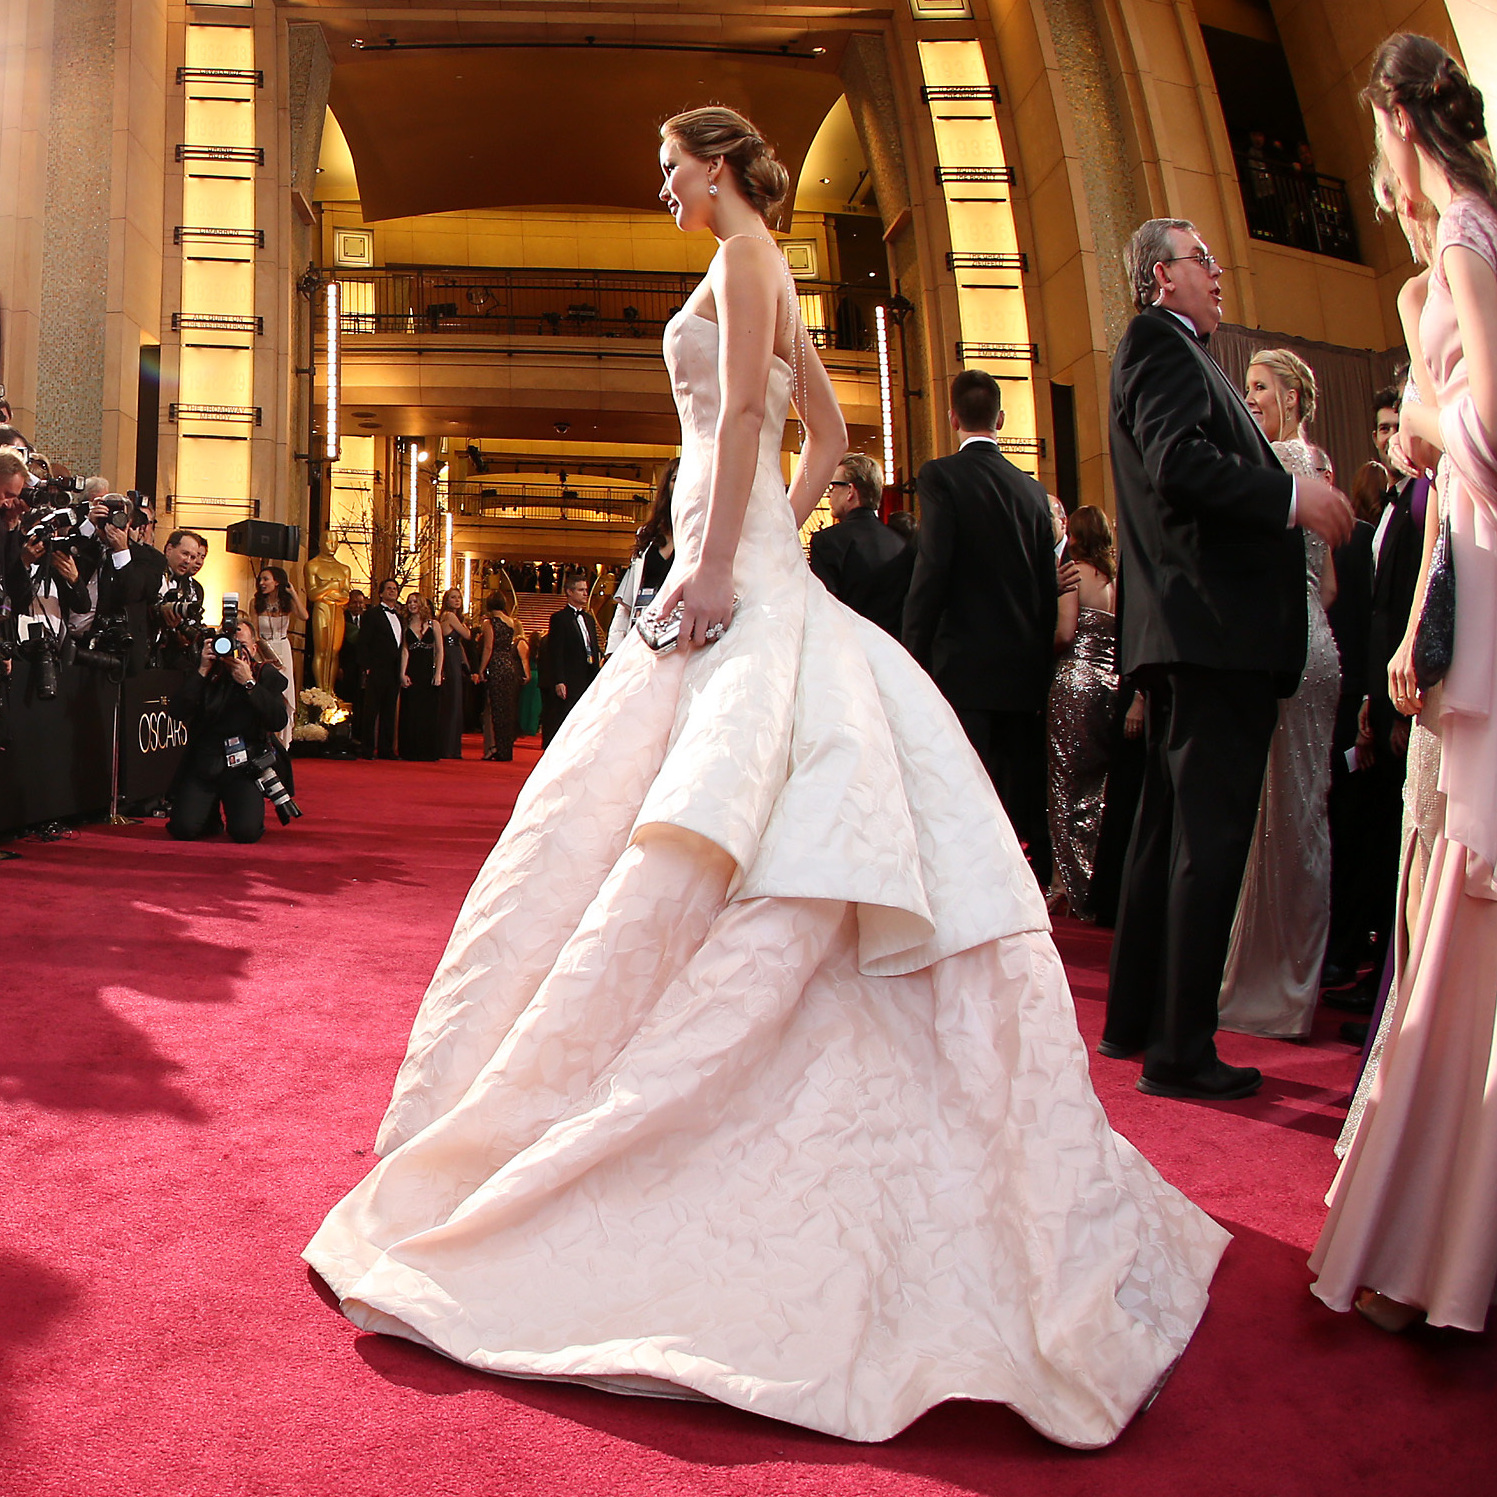 Actress Jennifer Lawrence arrives at the Oscars ceremony.